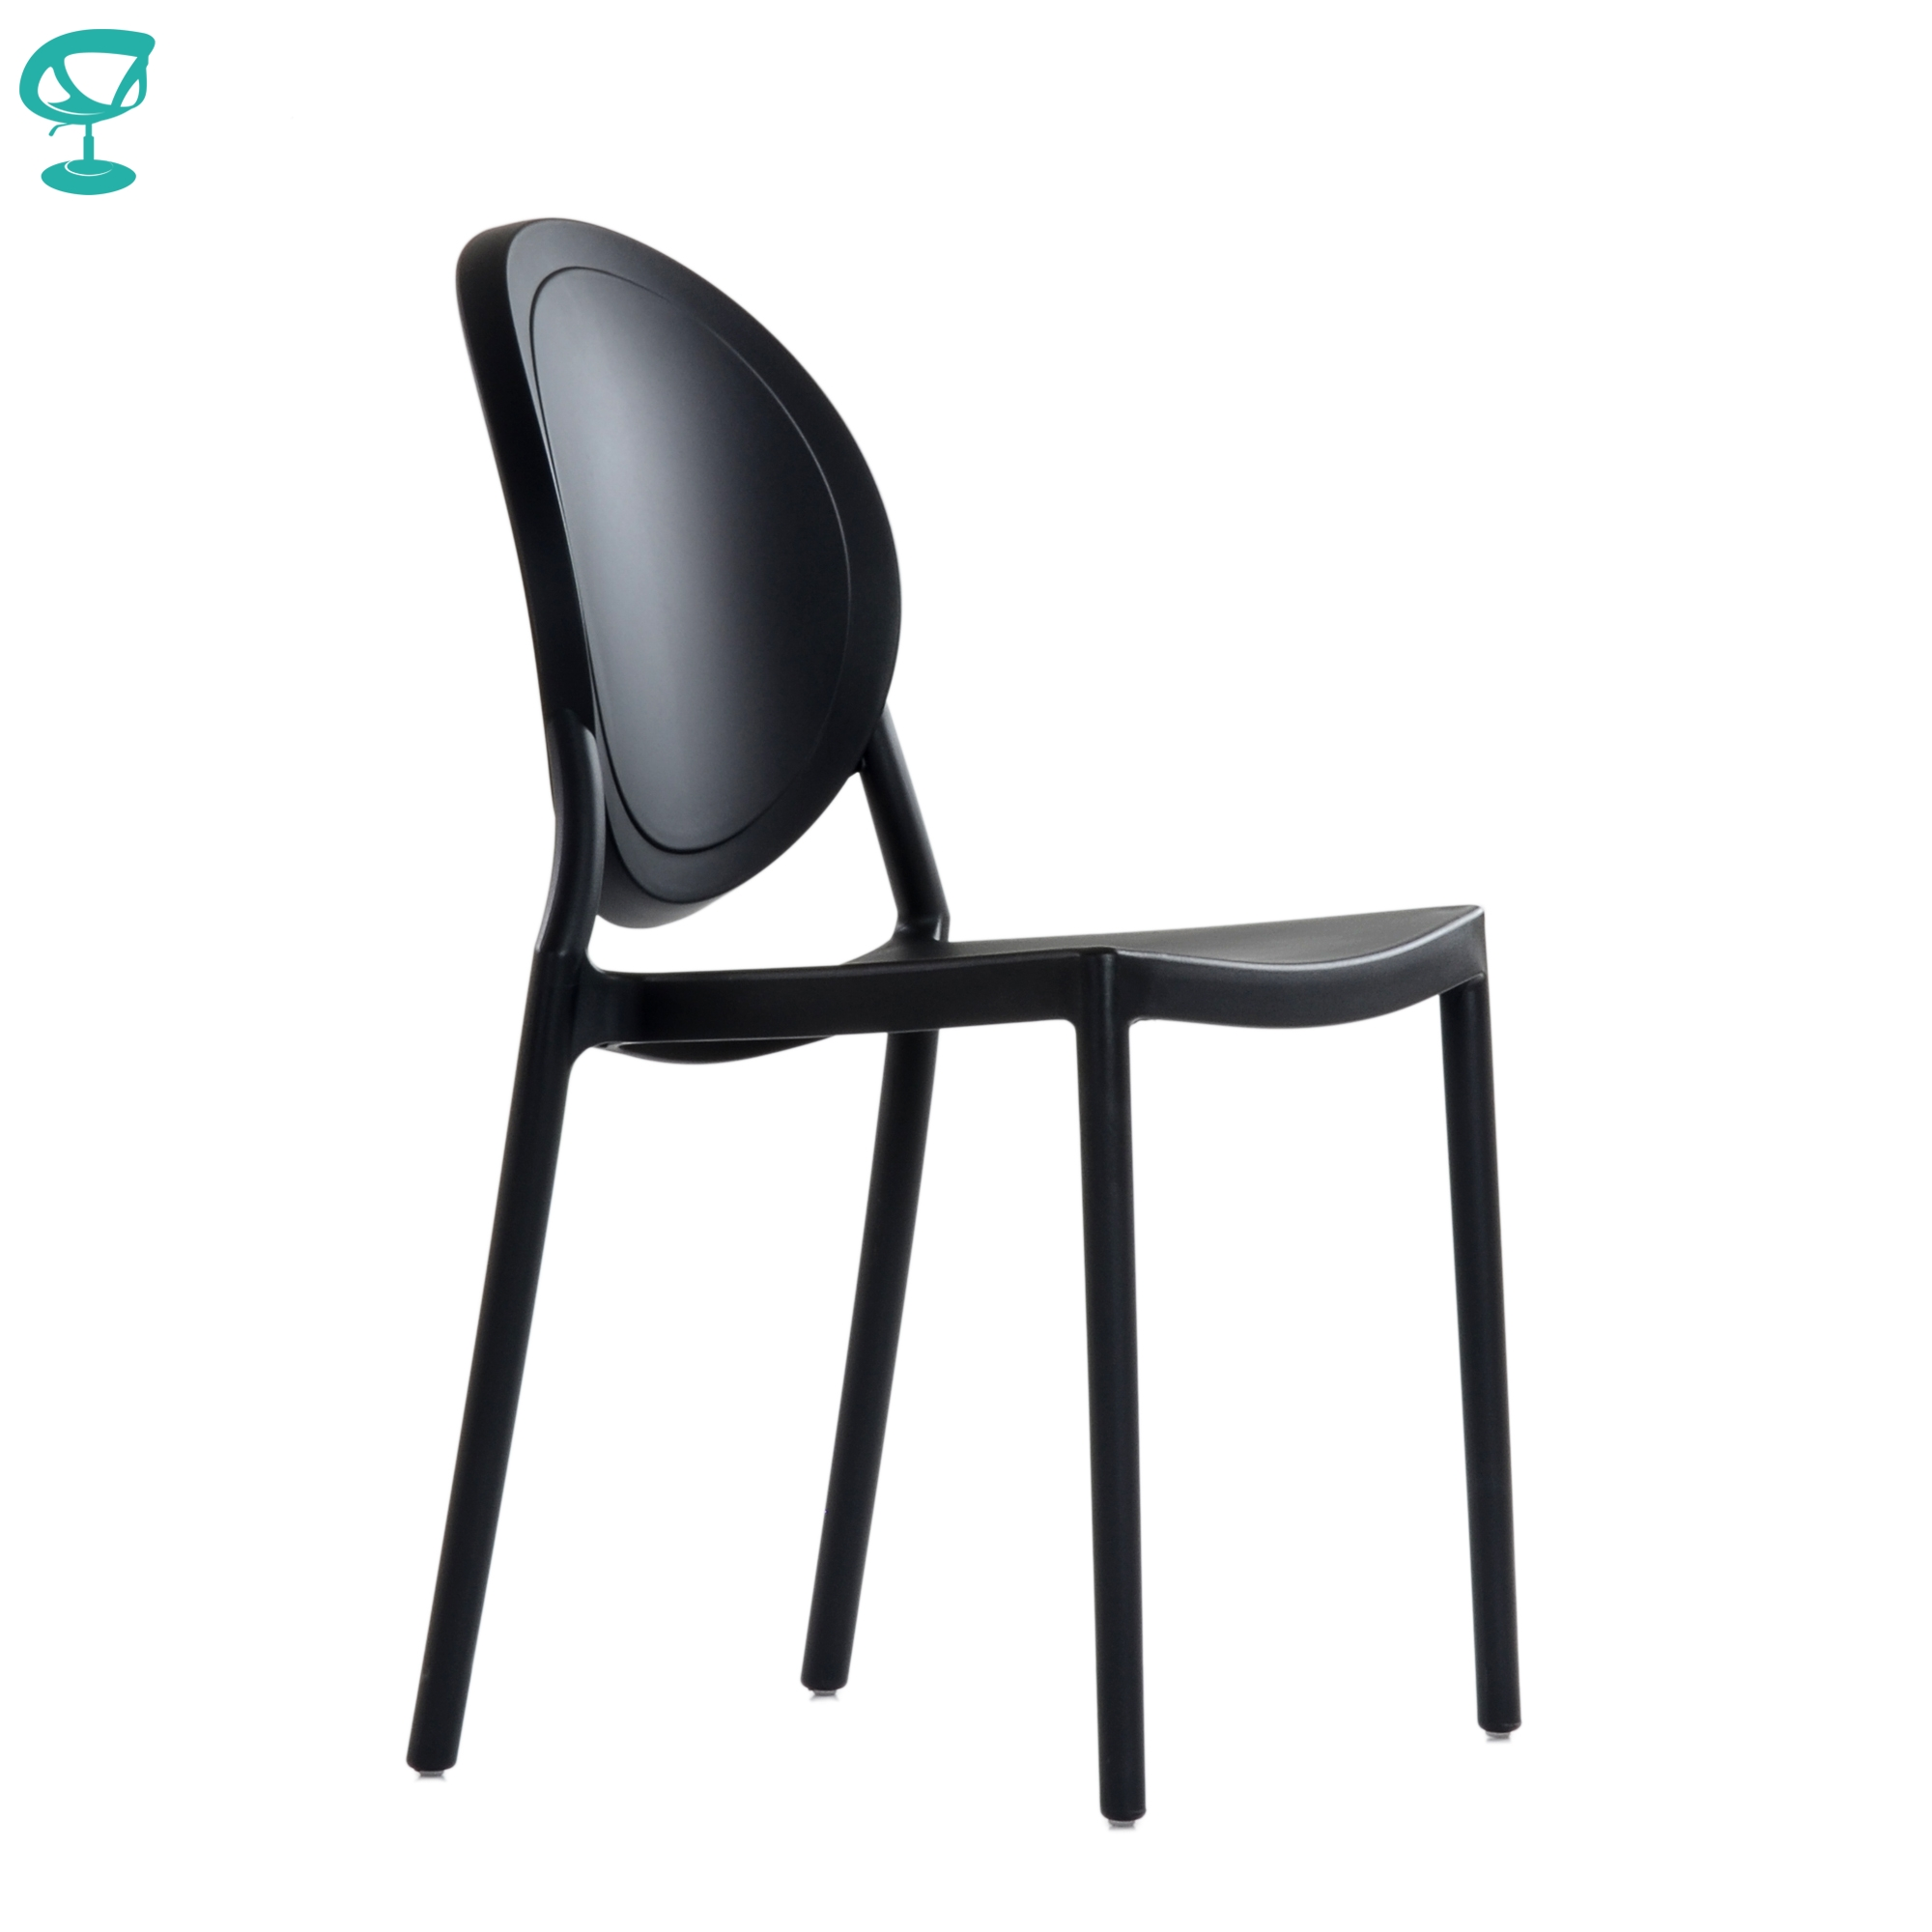 95715 Barneo N-217 Plastic Kitchen Interior Stool Chair For A Street Cafe Chair Kitchen Furniture Black Free Shipping In Russia